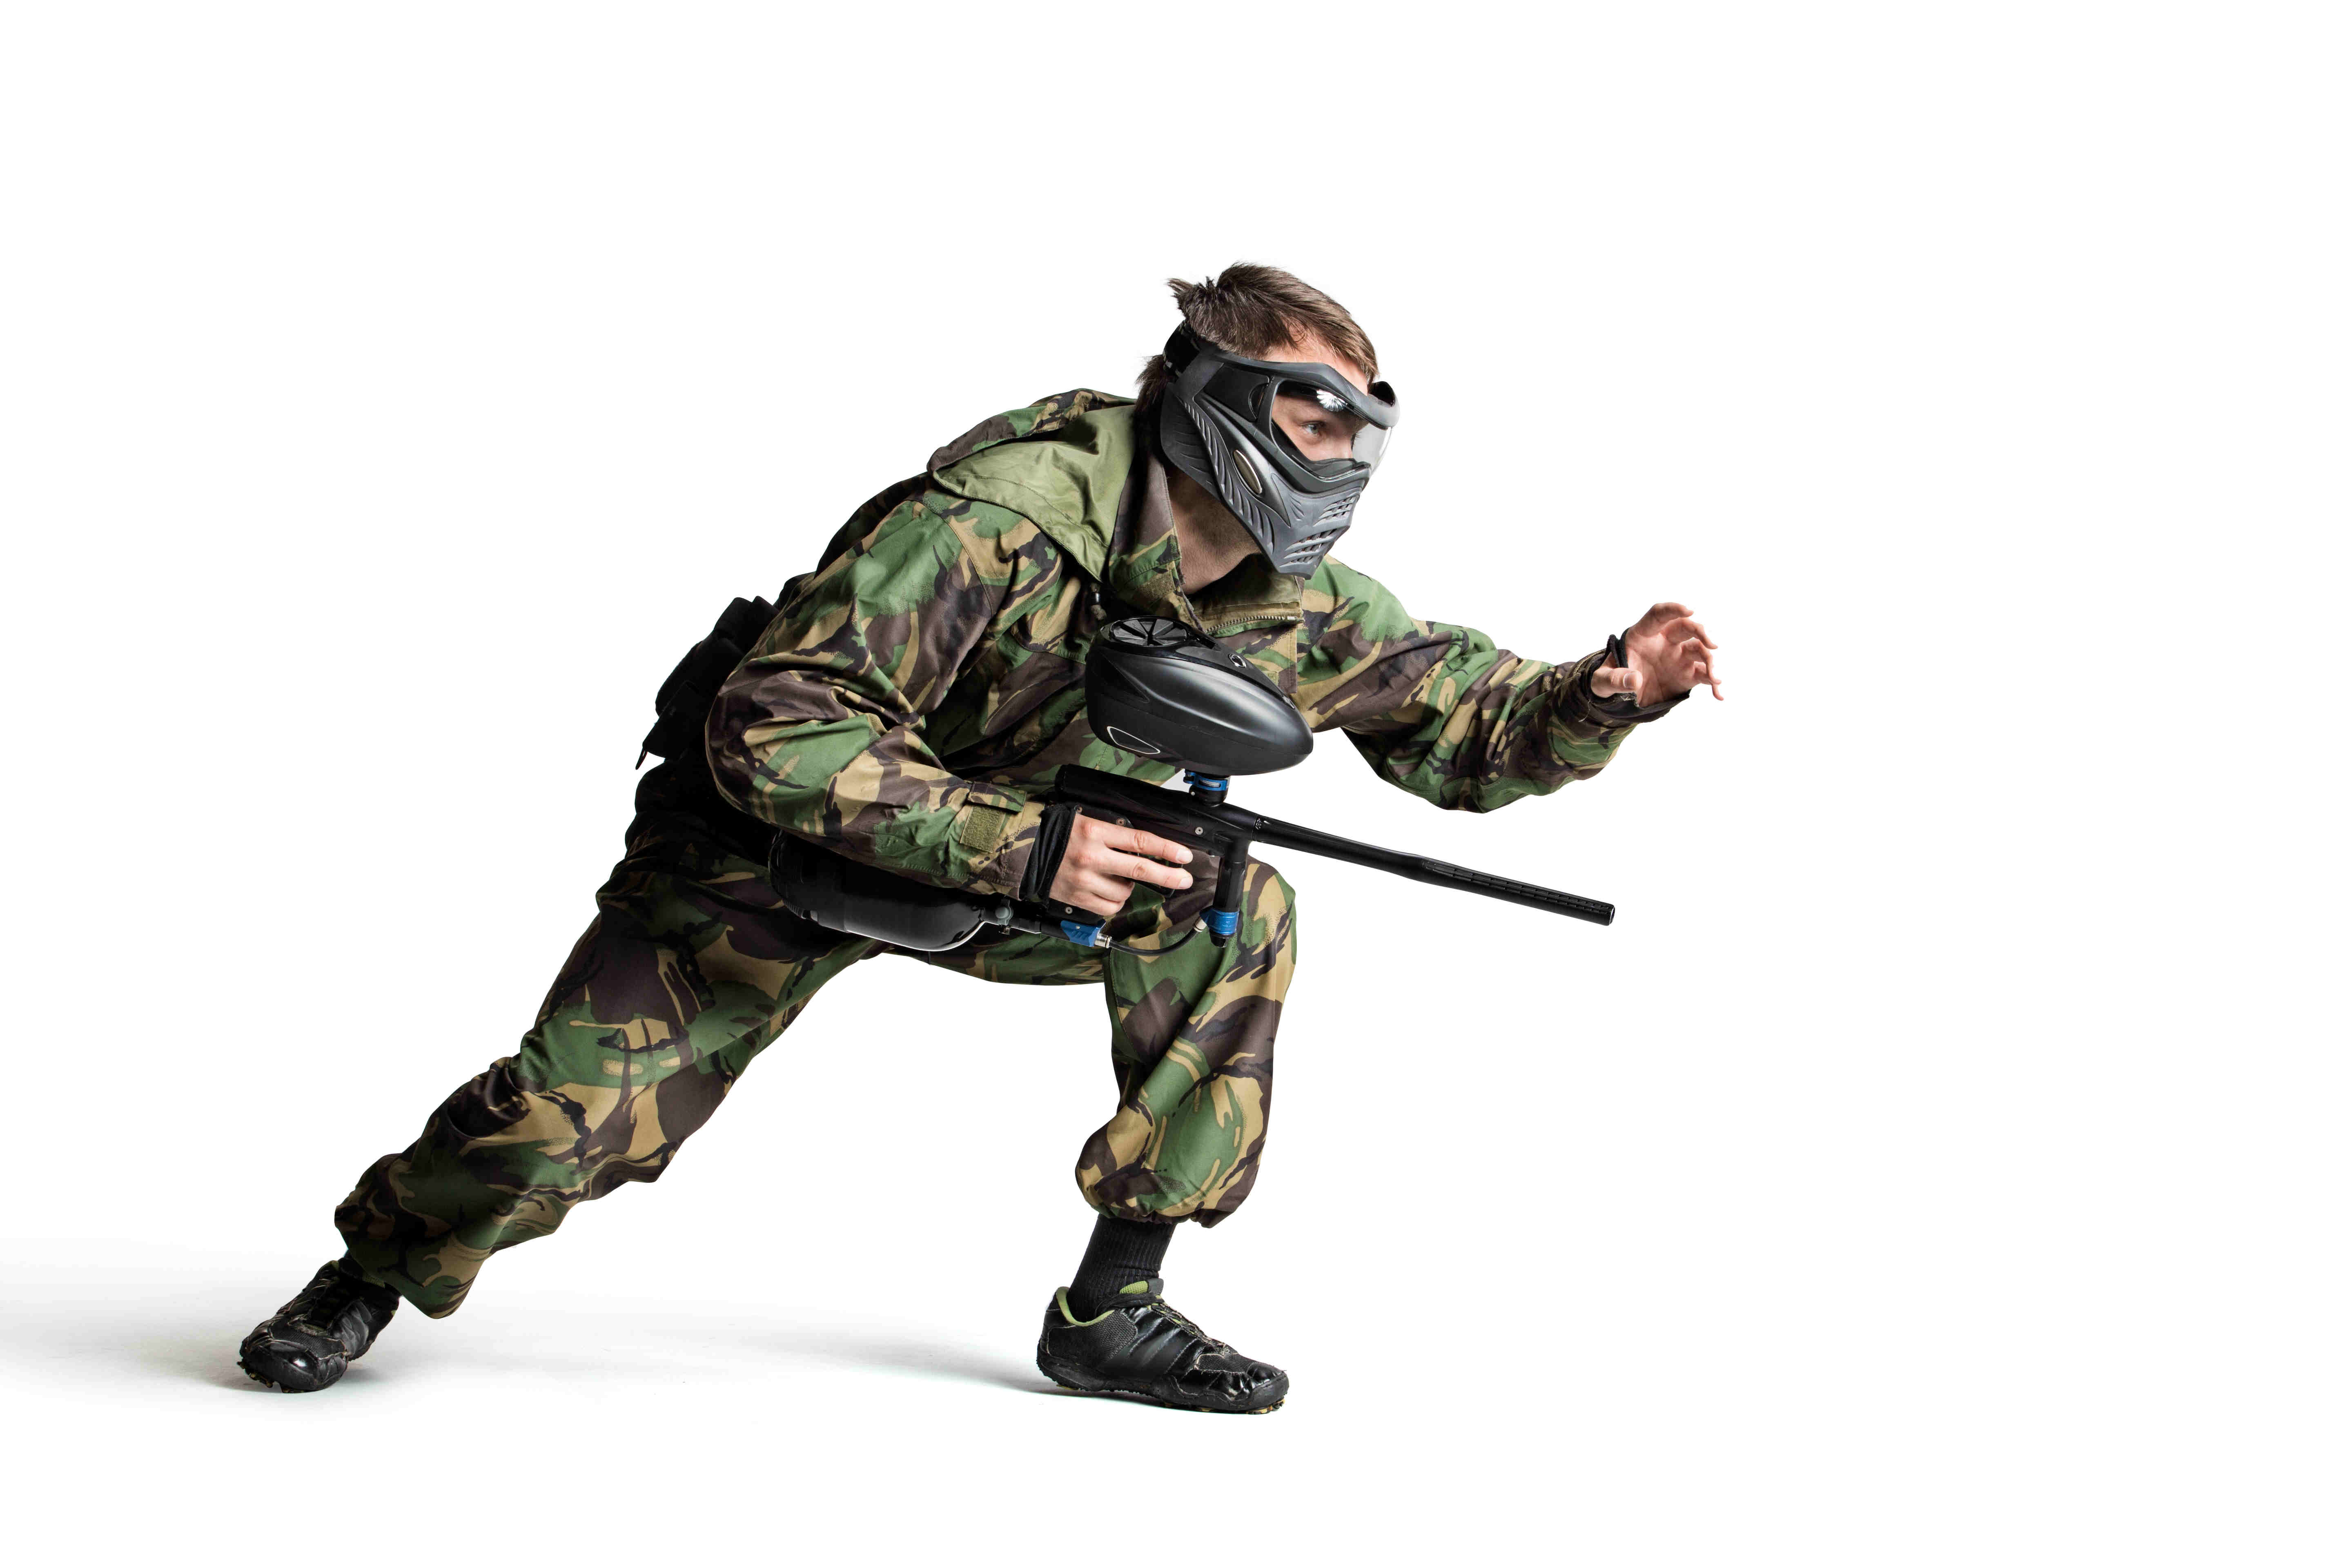 Get the Latest Paintball Gear from Knowledgeable Online Retailers